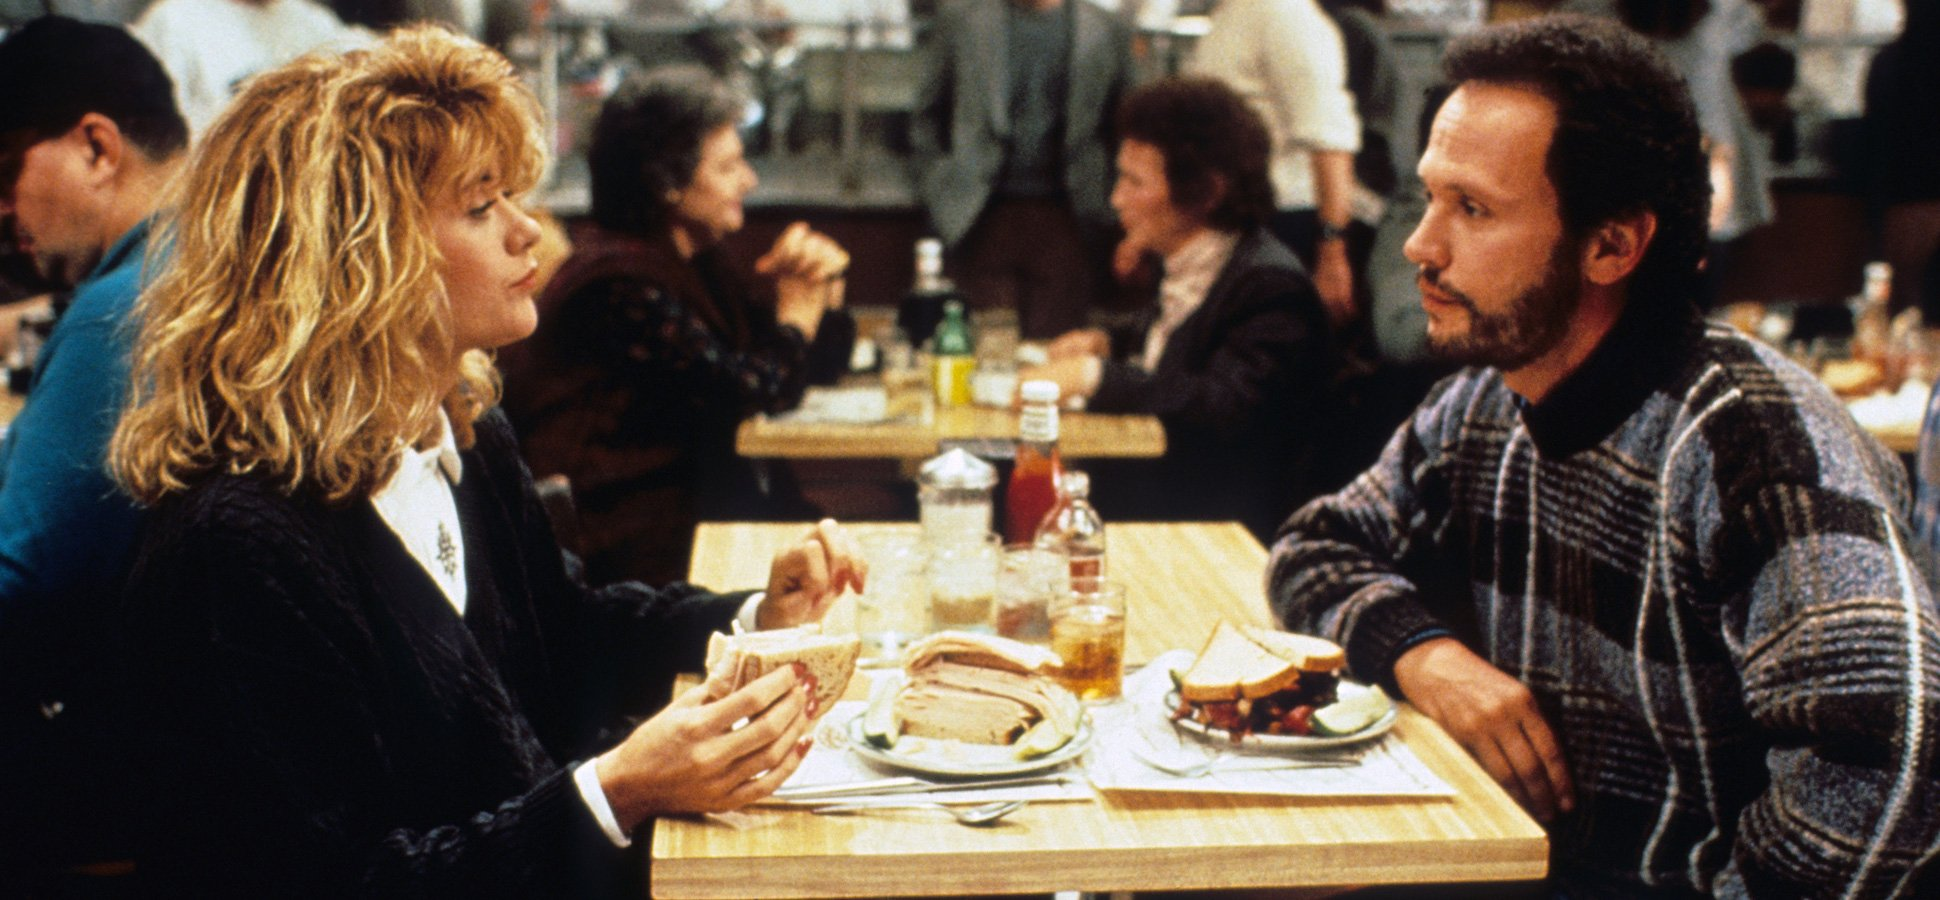 WHEN HARRY MET SALLY (1989 / 35mm Print) - Thurs Feb 14th 7:30pm / Loft Cinema, Tuscon AZThis Valentine's Day, we'll ALL have what she's having as The Loft celebrates the 30th anniversary of one of the greatest romantic comedies of all-time, starring Billy Crystal and Meg Ryan.More info HERE